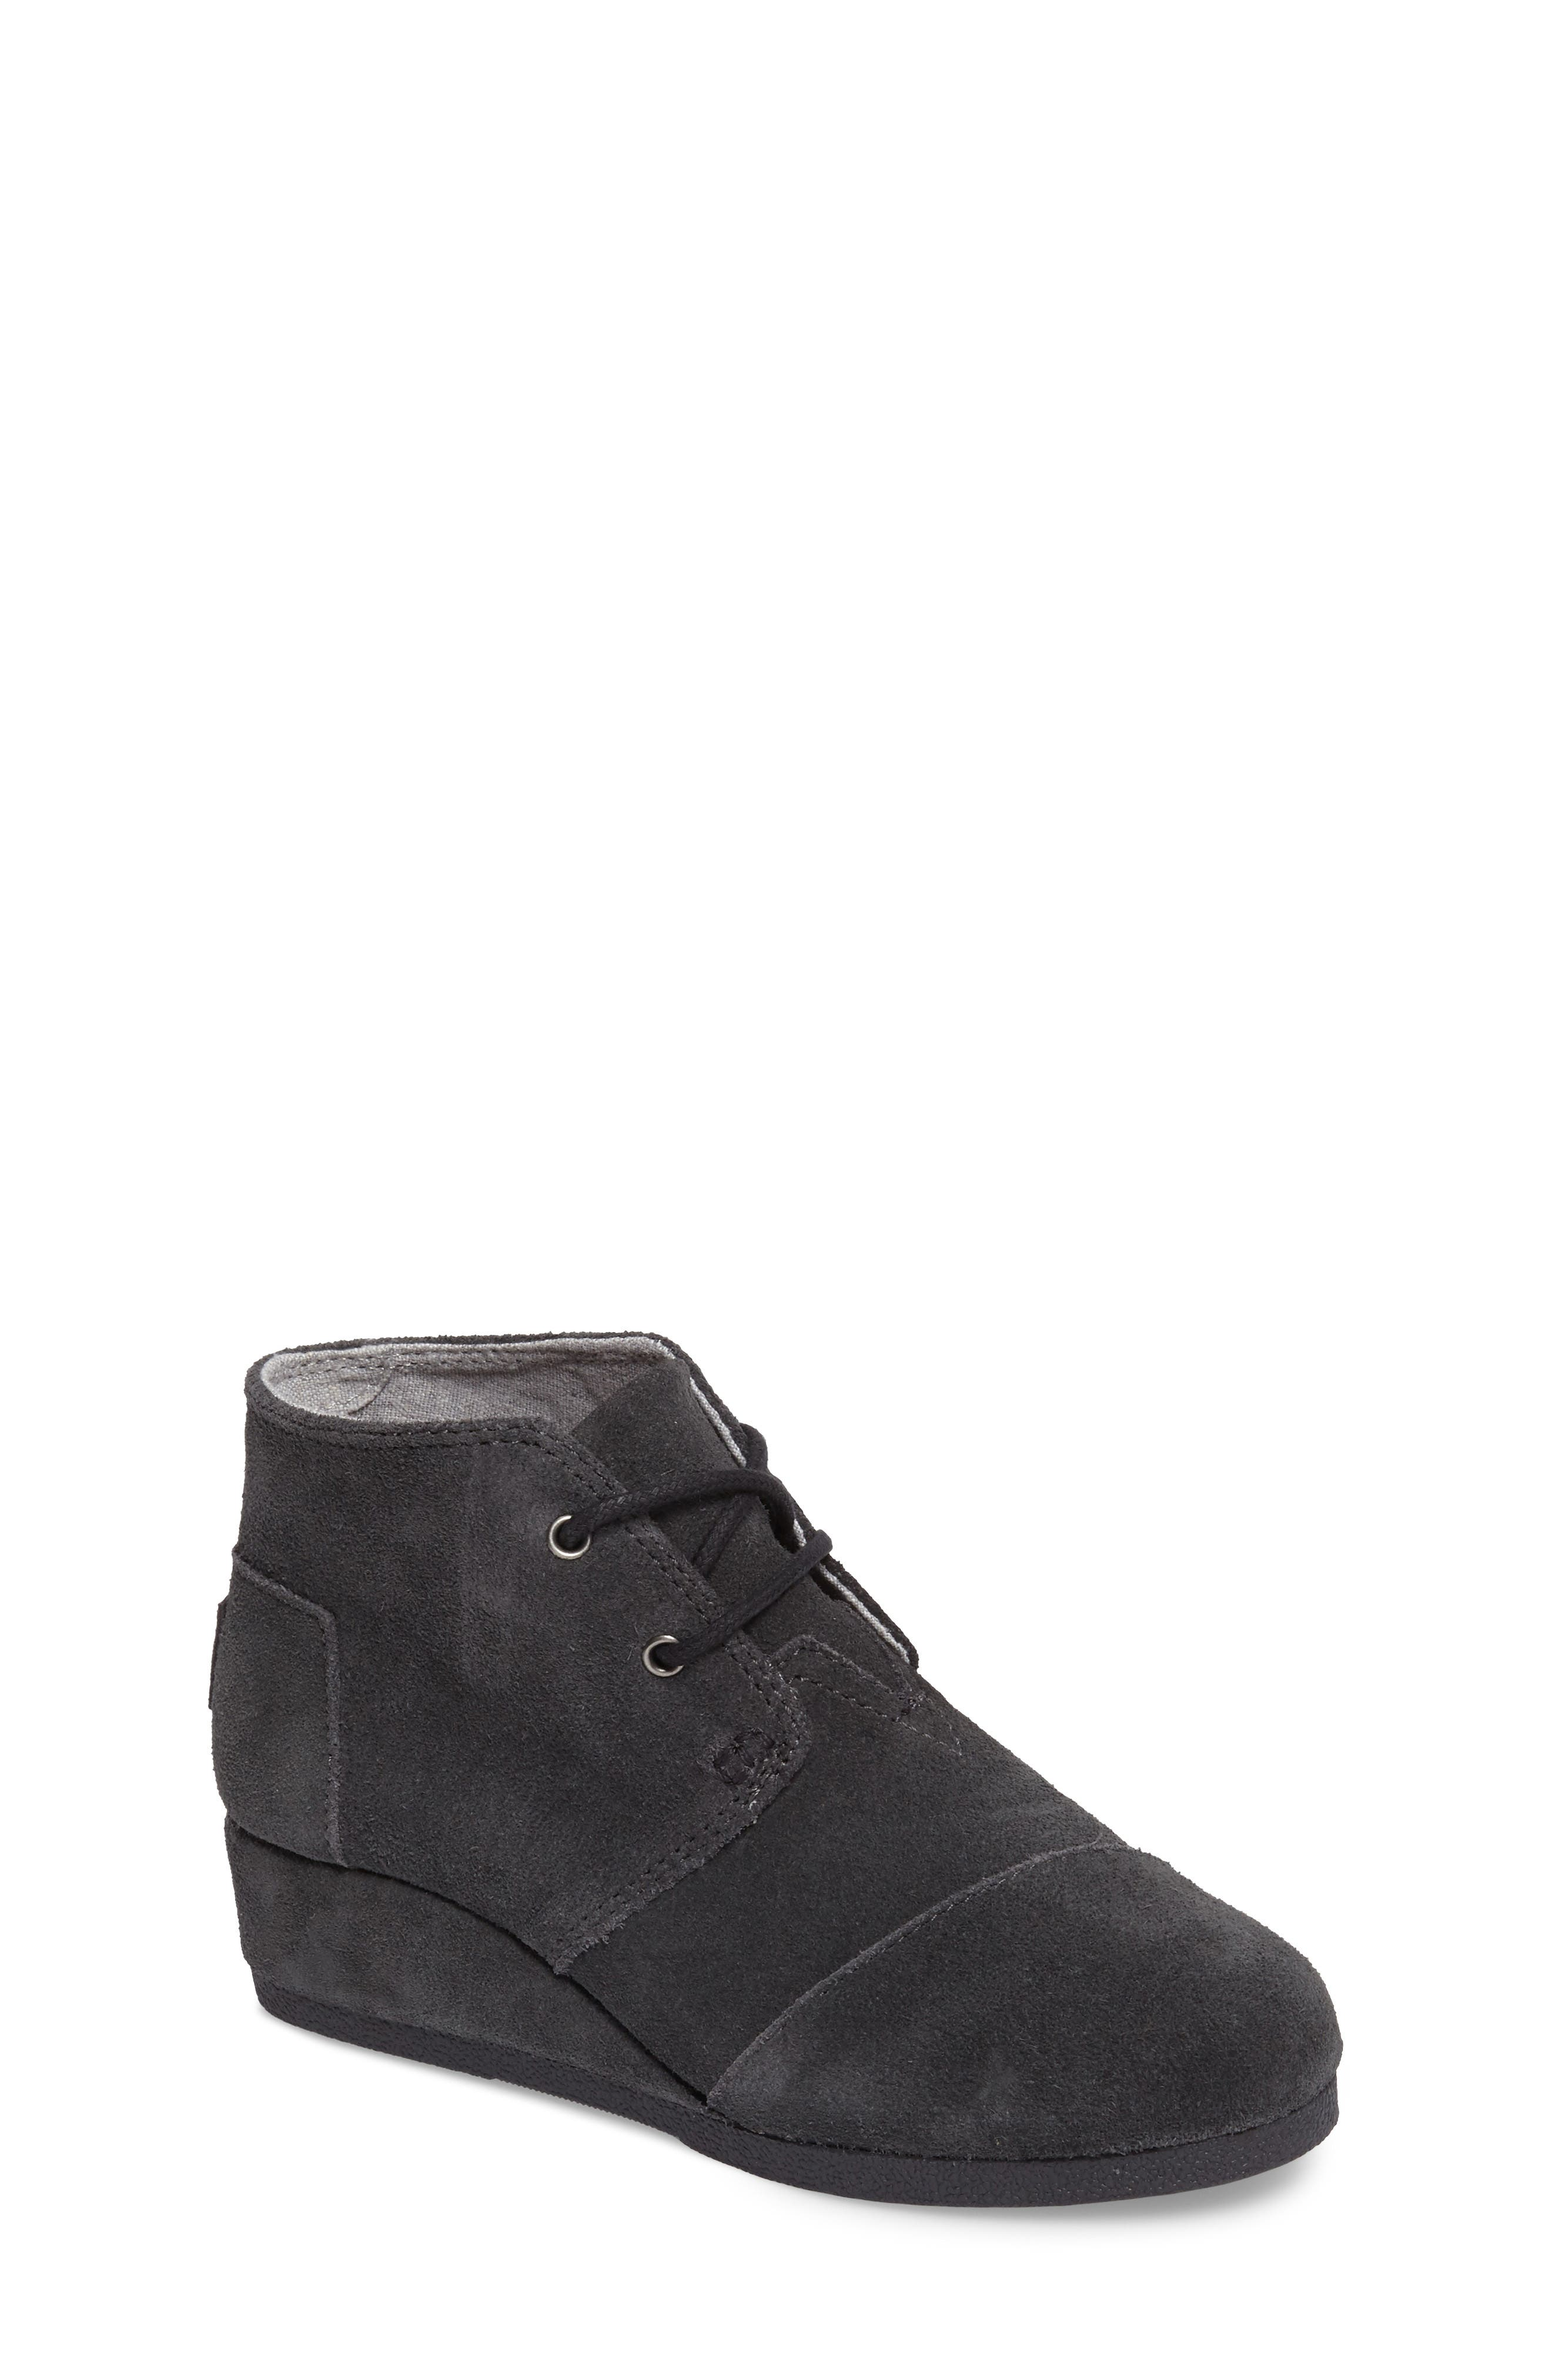 'Desert - Youth' Wedge Bootie,                             Main thumbnail 1, color,                             021